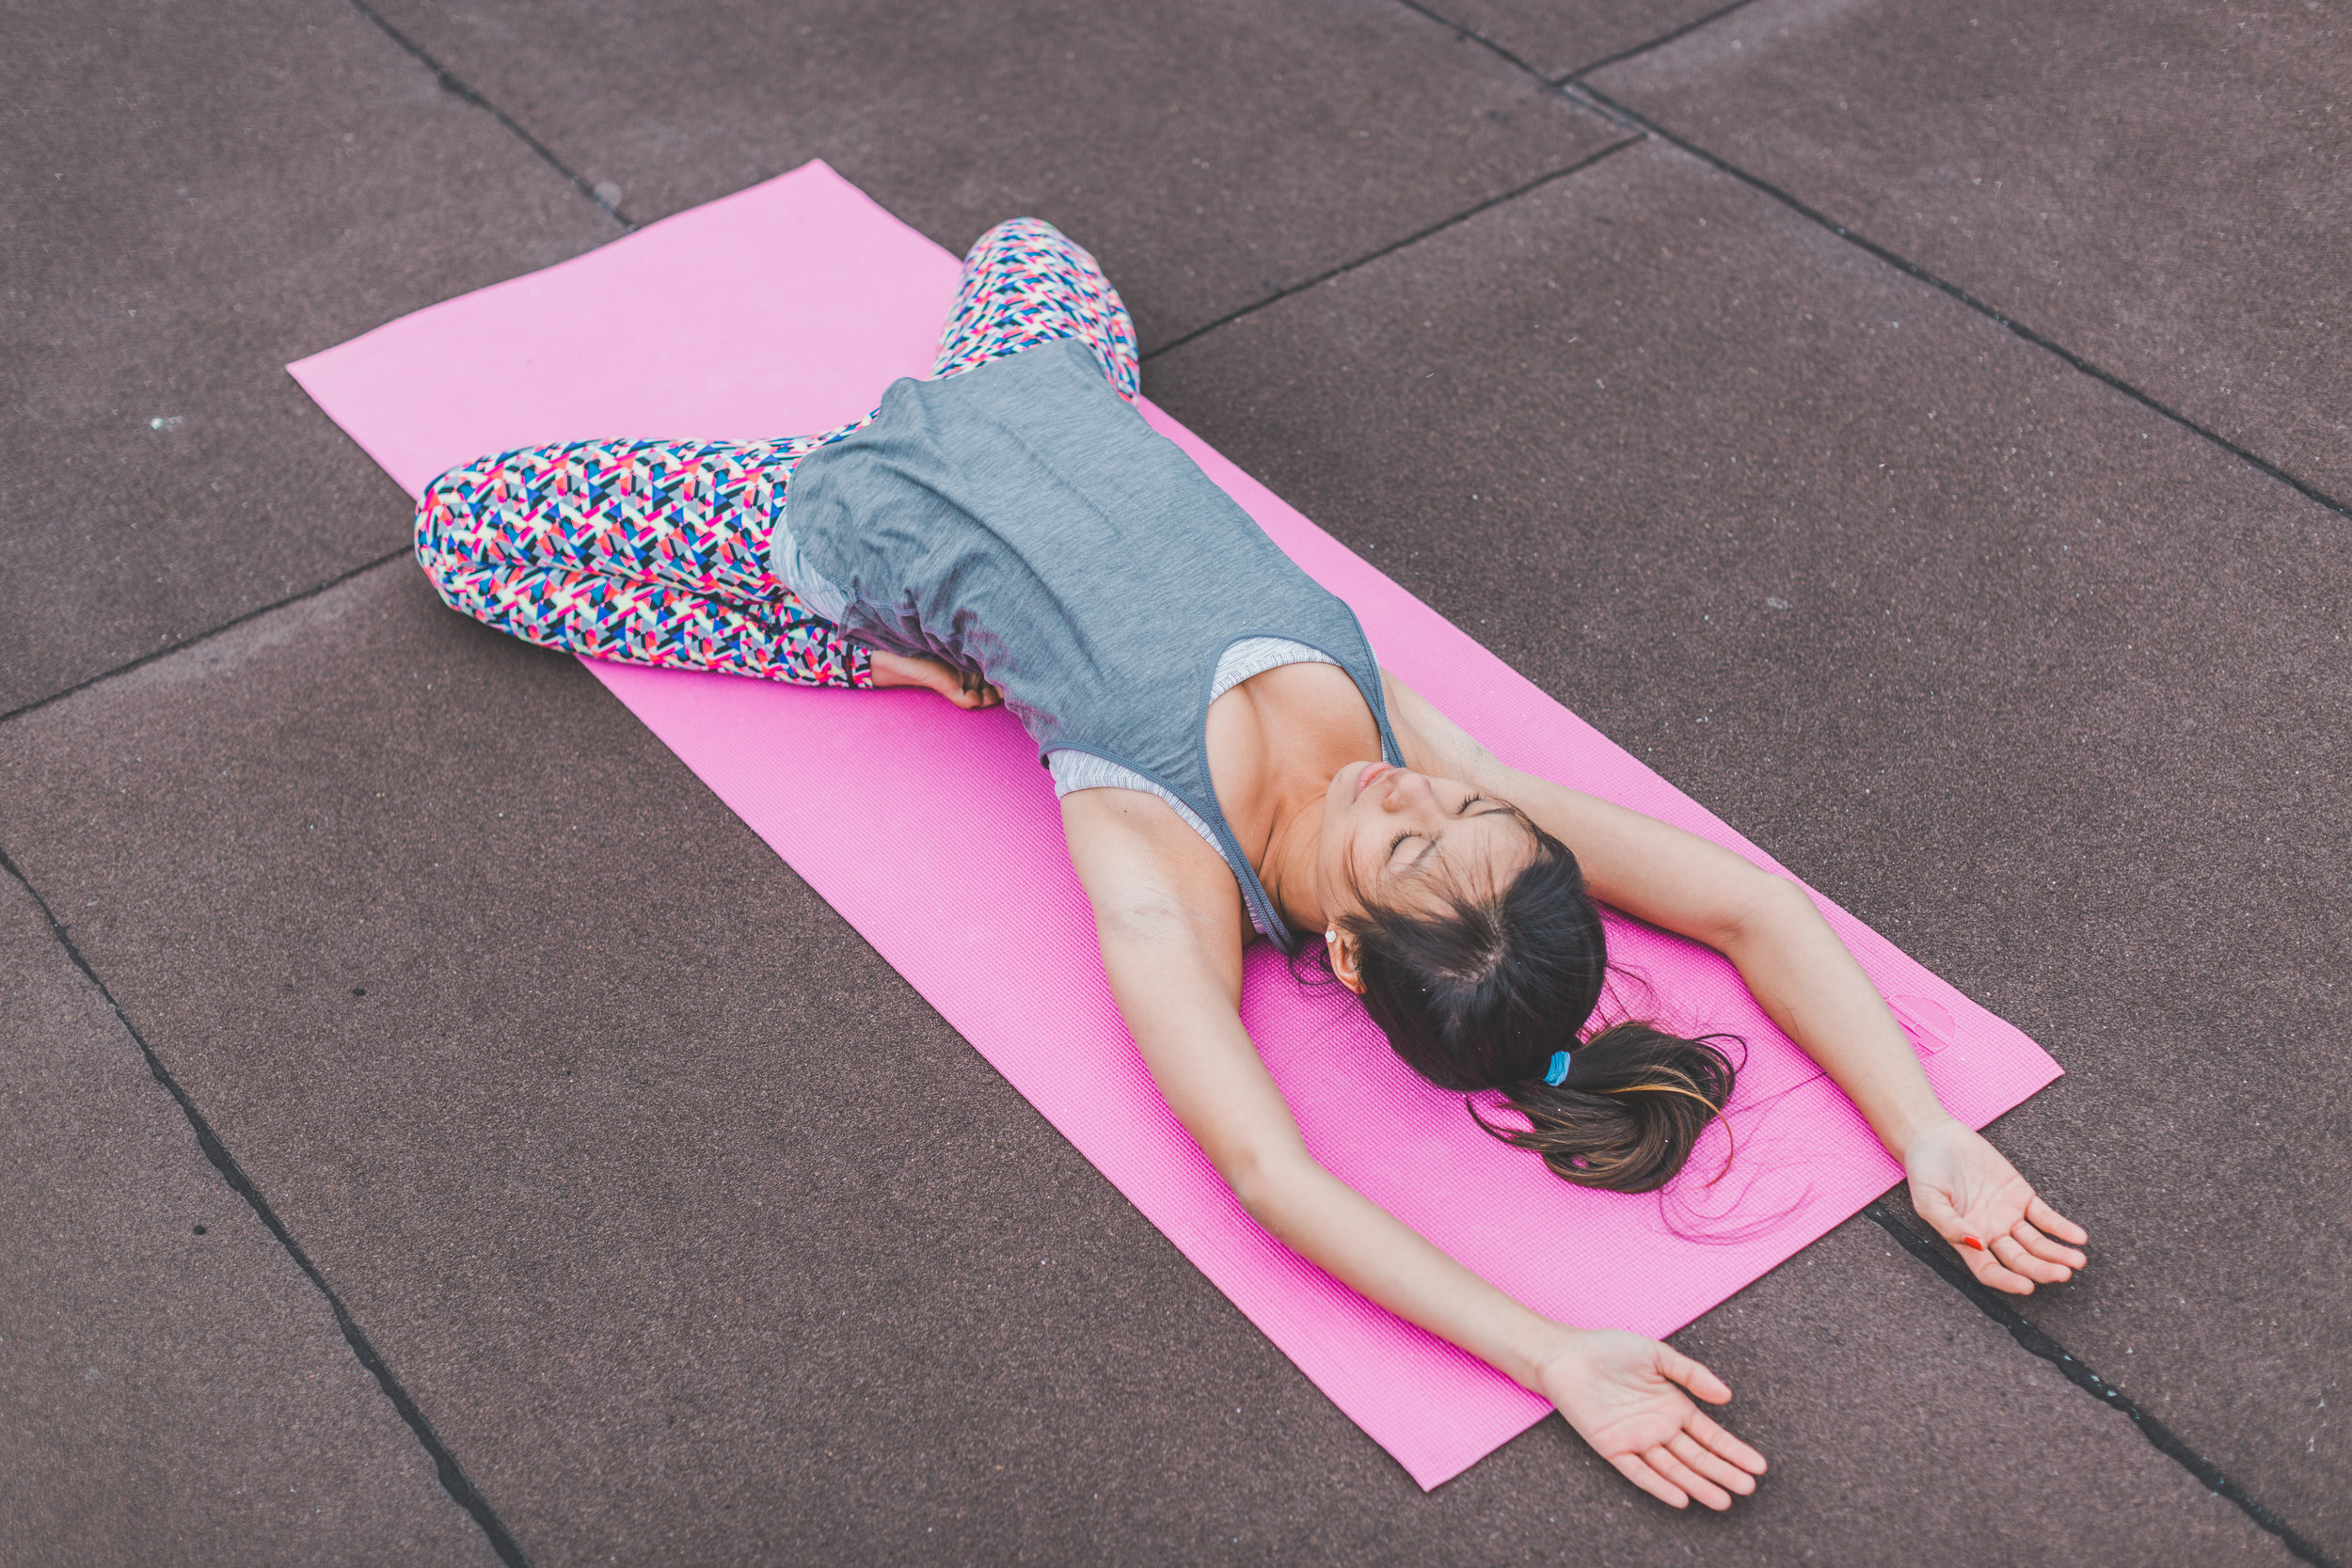 Canva - Woman Lying on Pink Yoga Mat.jpg